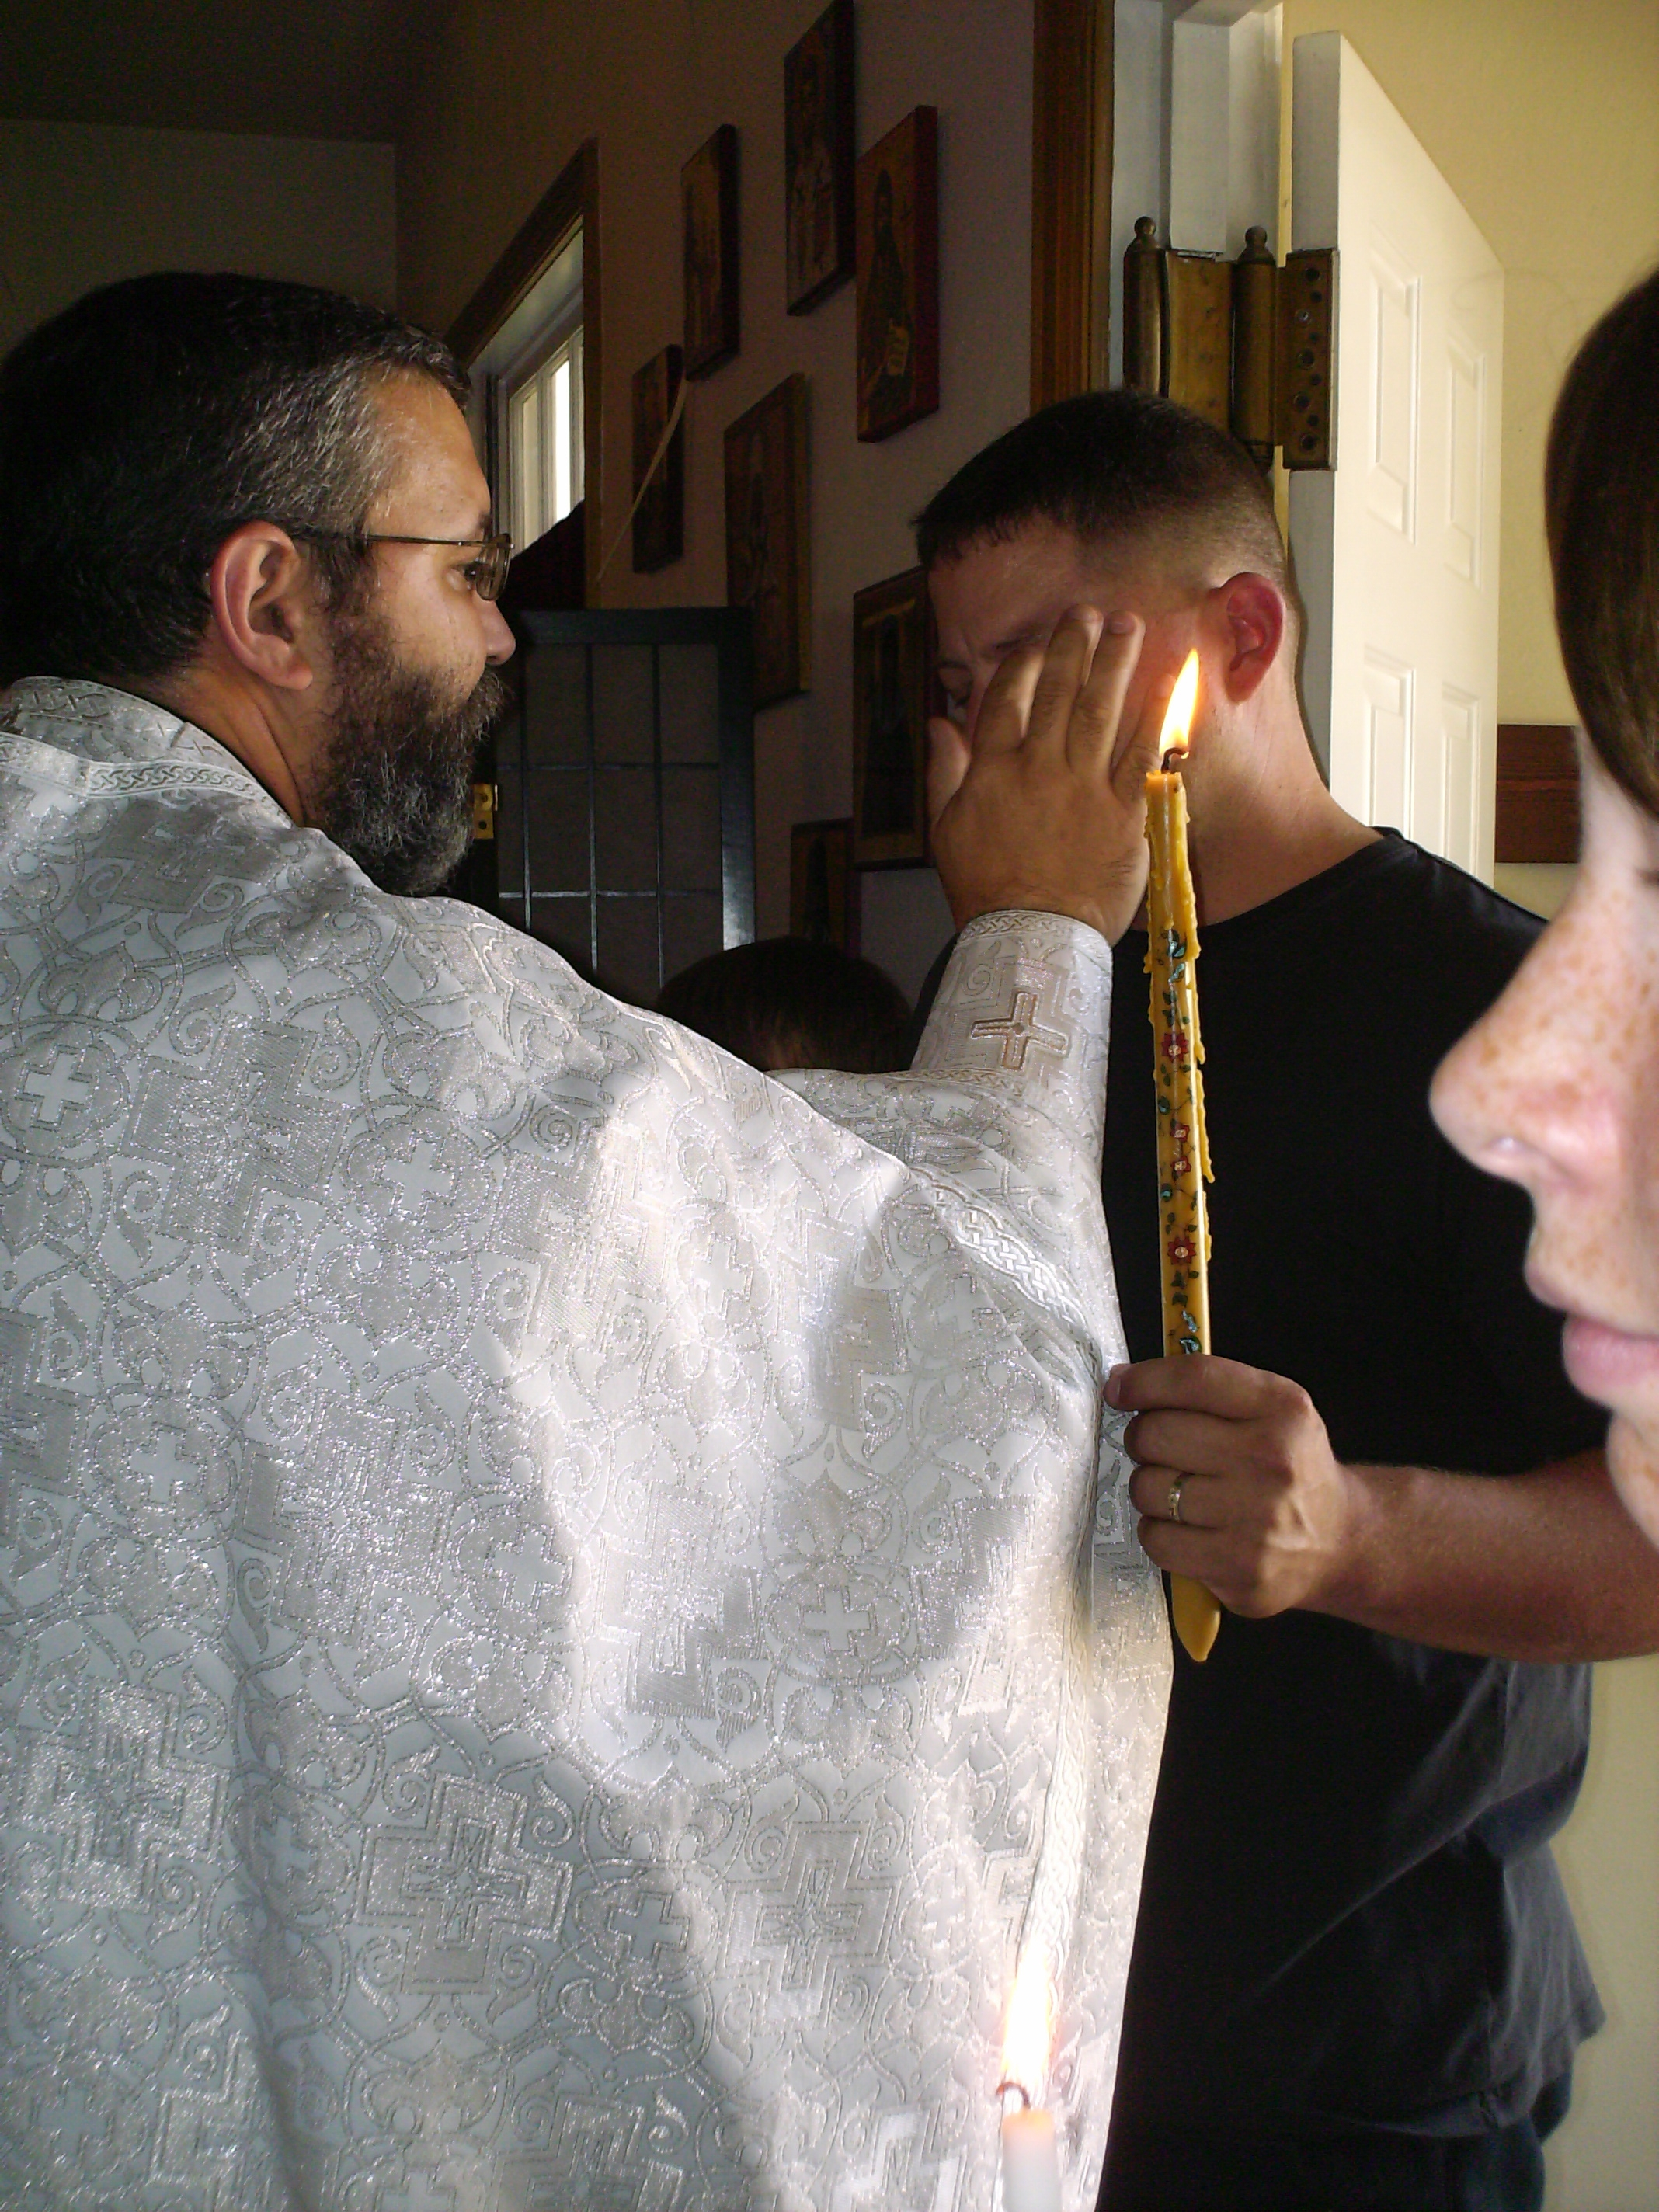 Being anointed with oil before Baptism